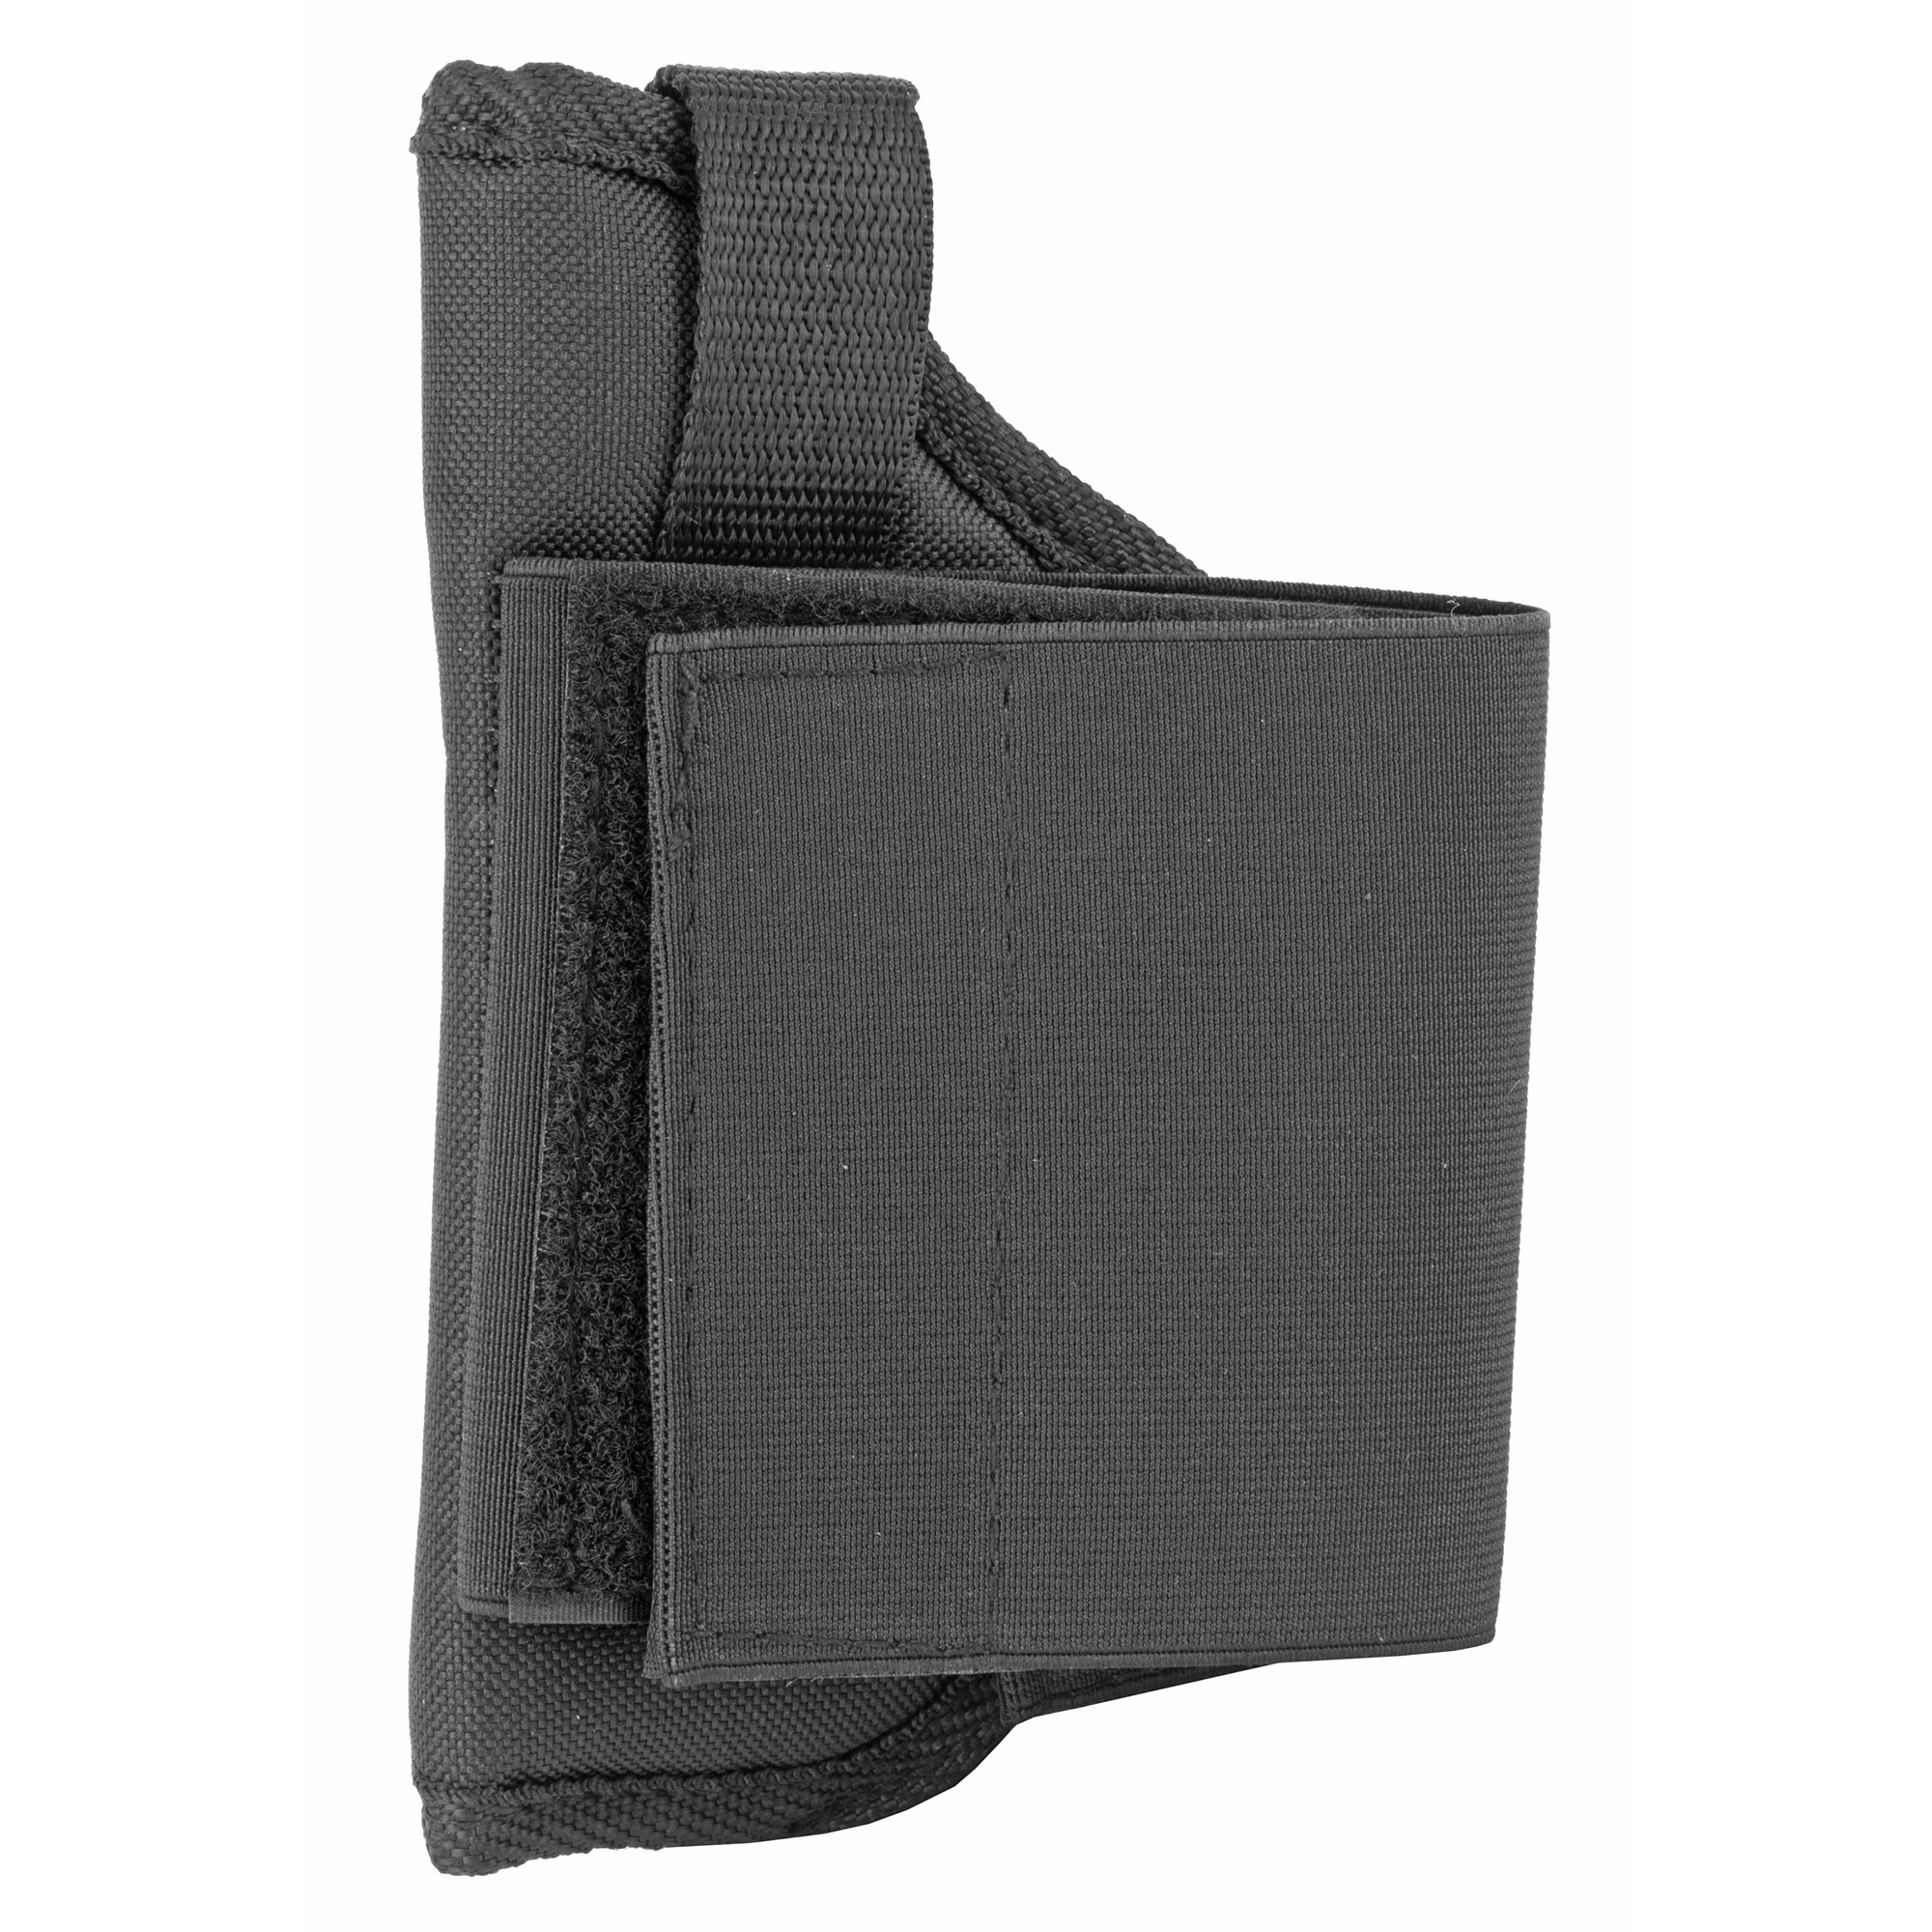 Bulldog Cases Glock 26/27, Walther P22, HK USP Pro Right Hand Nylon Ankle H-img-1